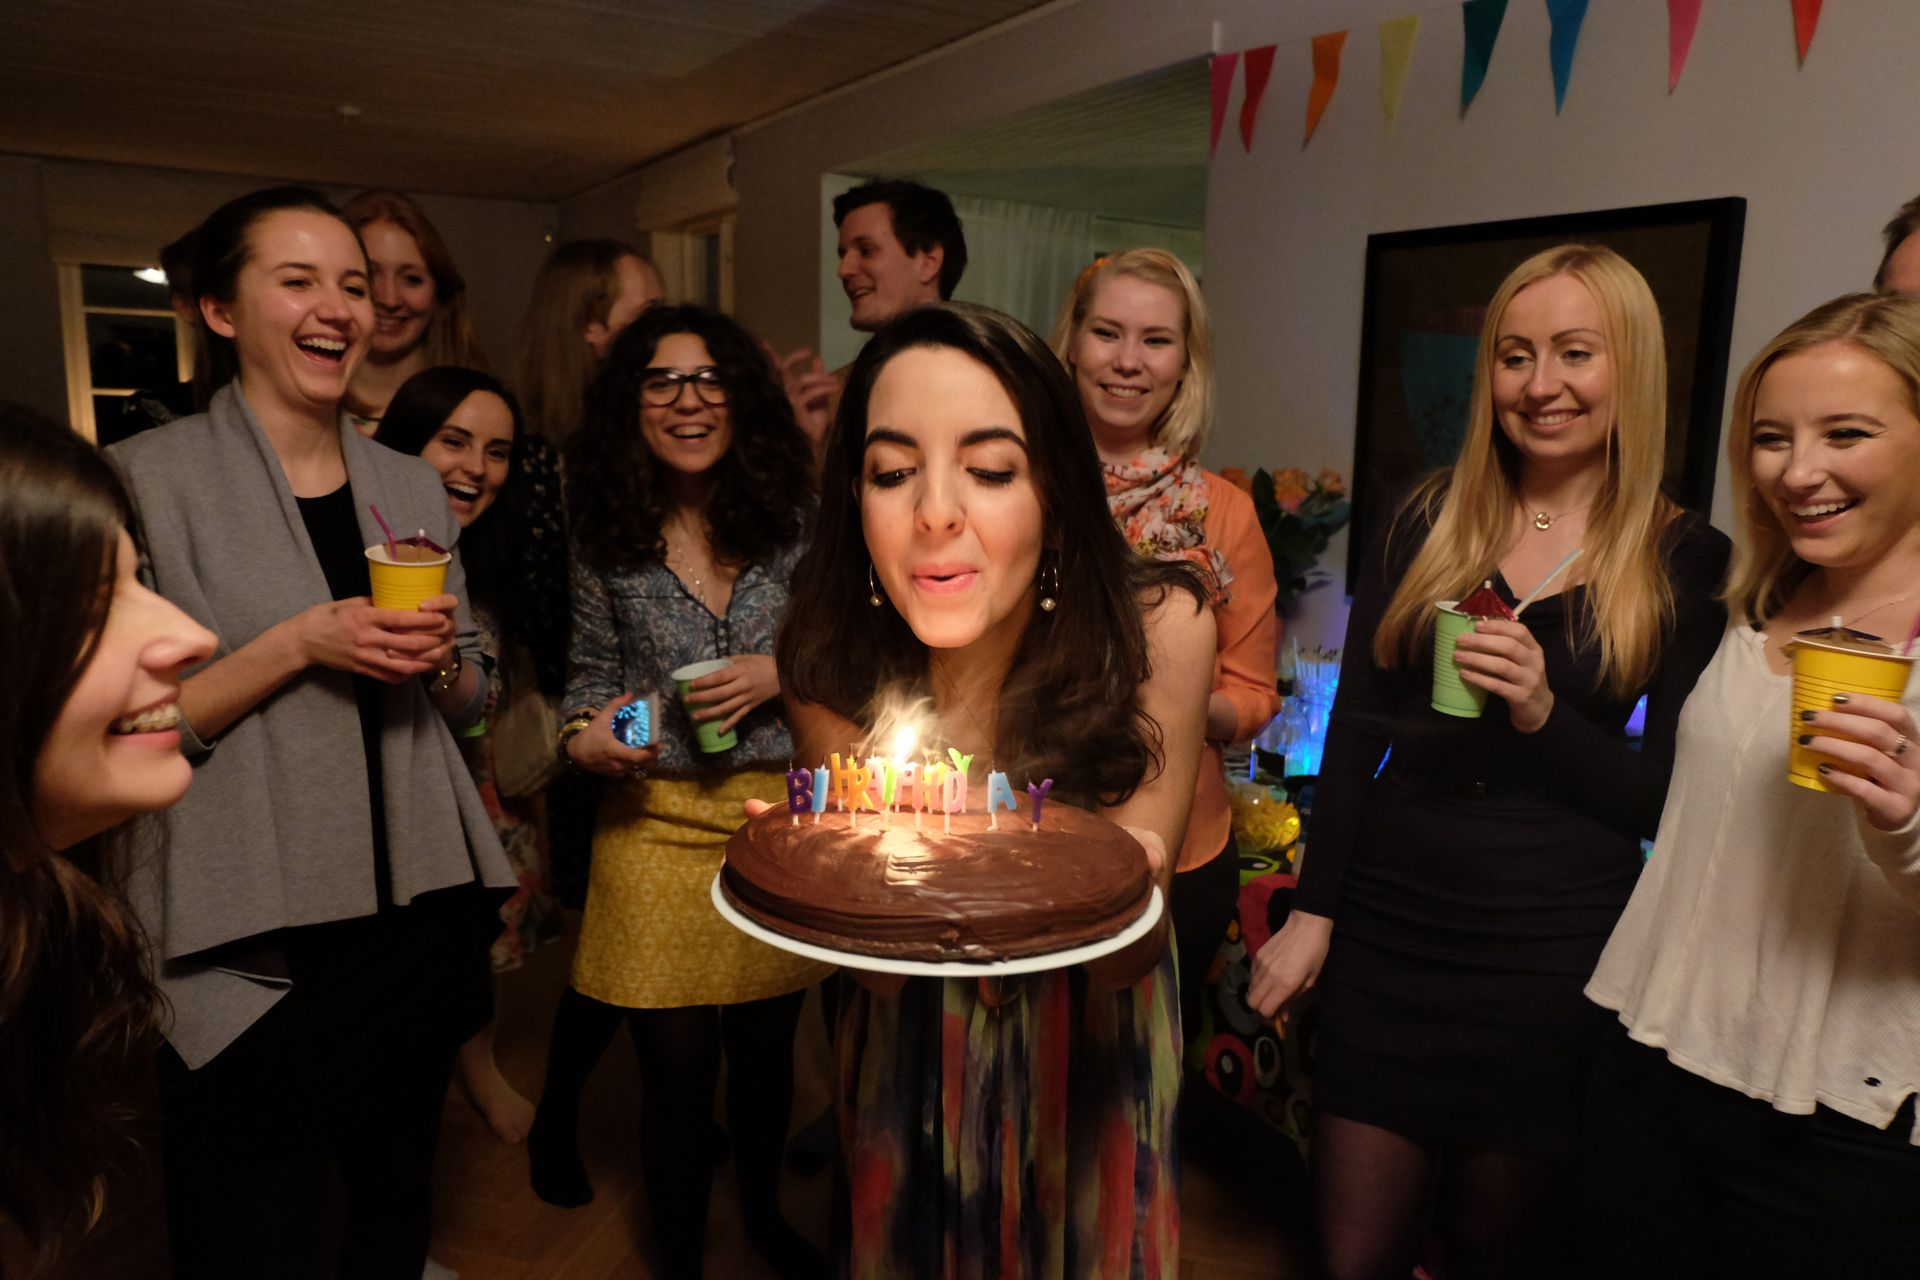 Person blowing out candles on a birthday cake.